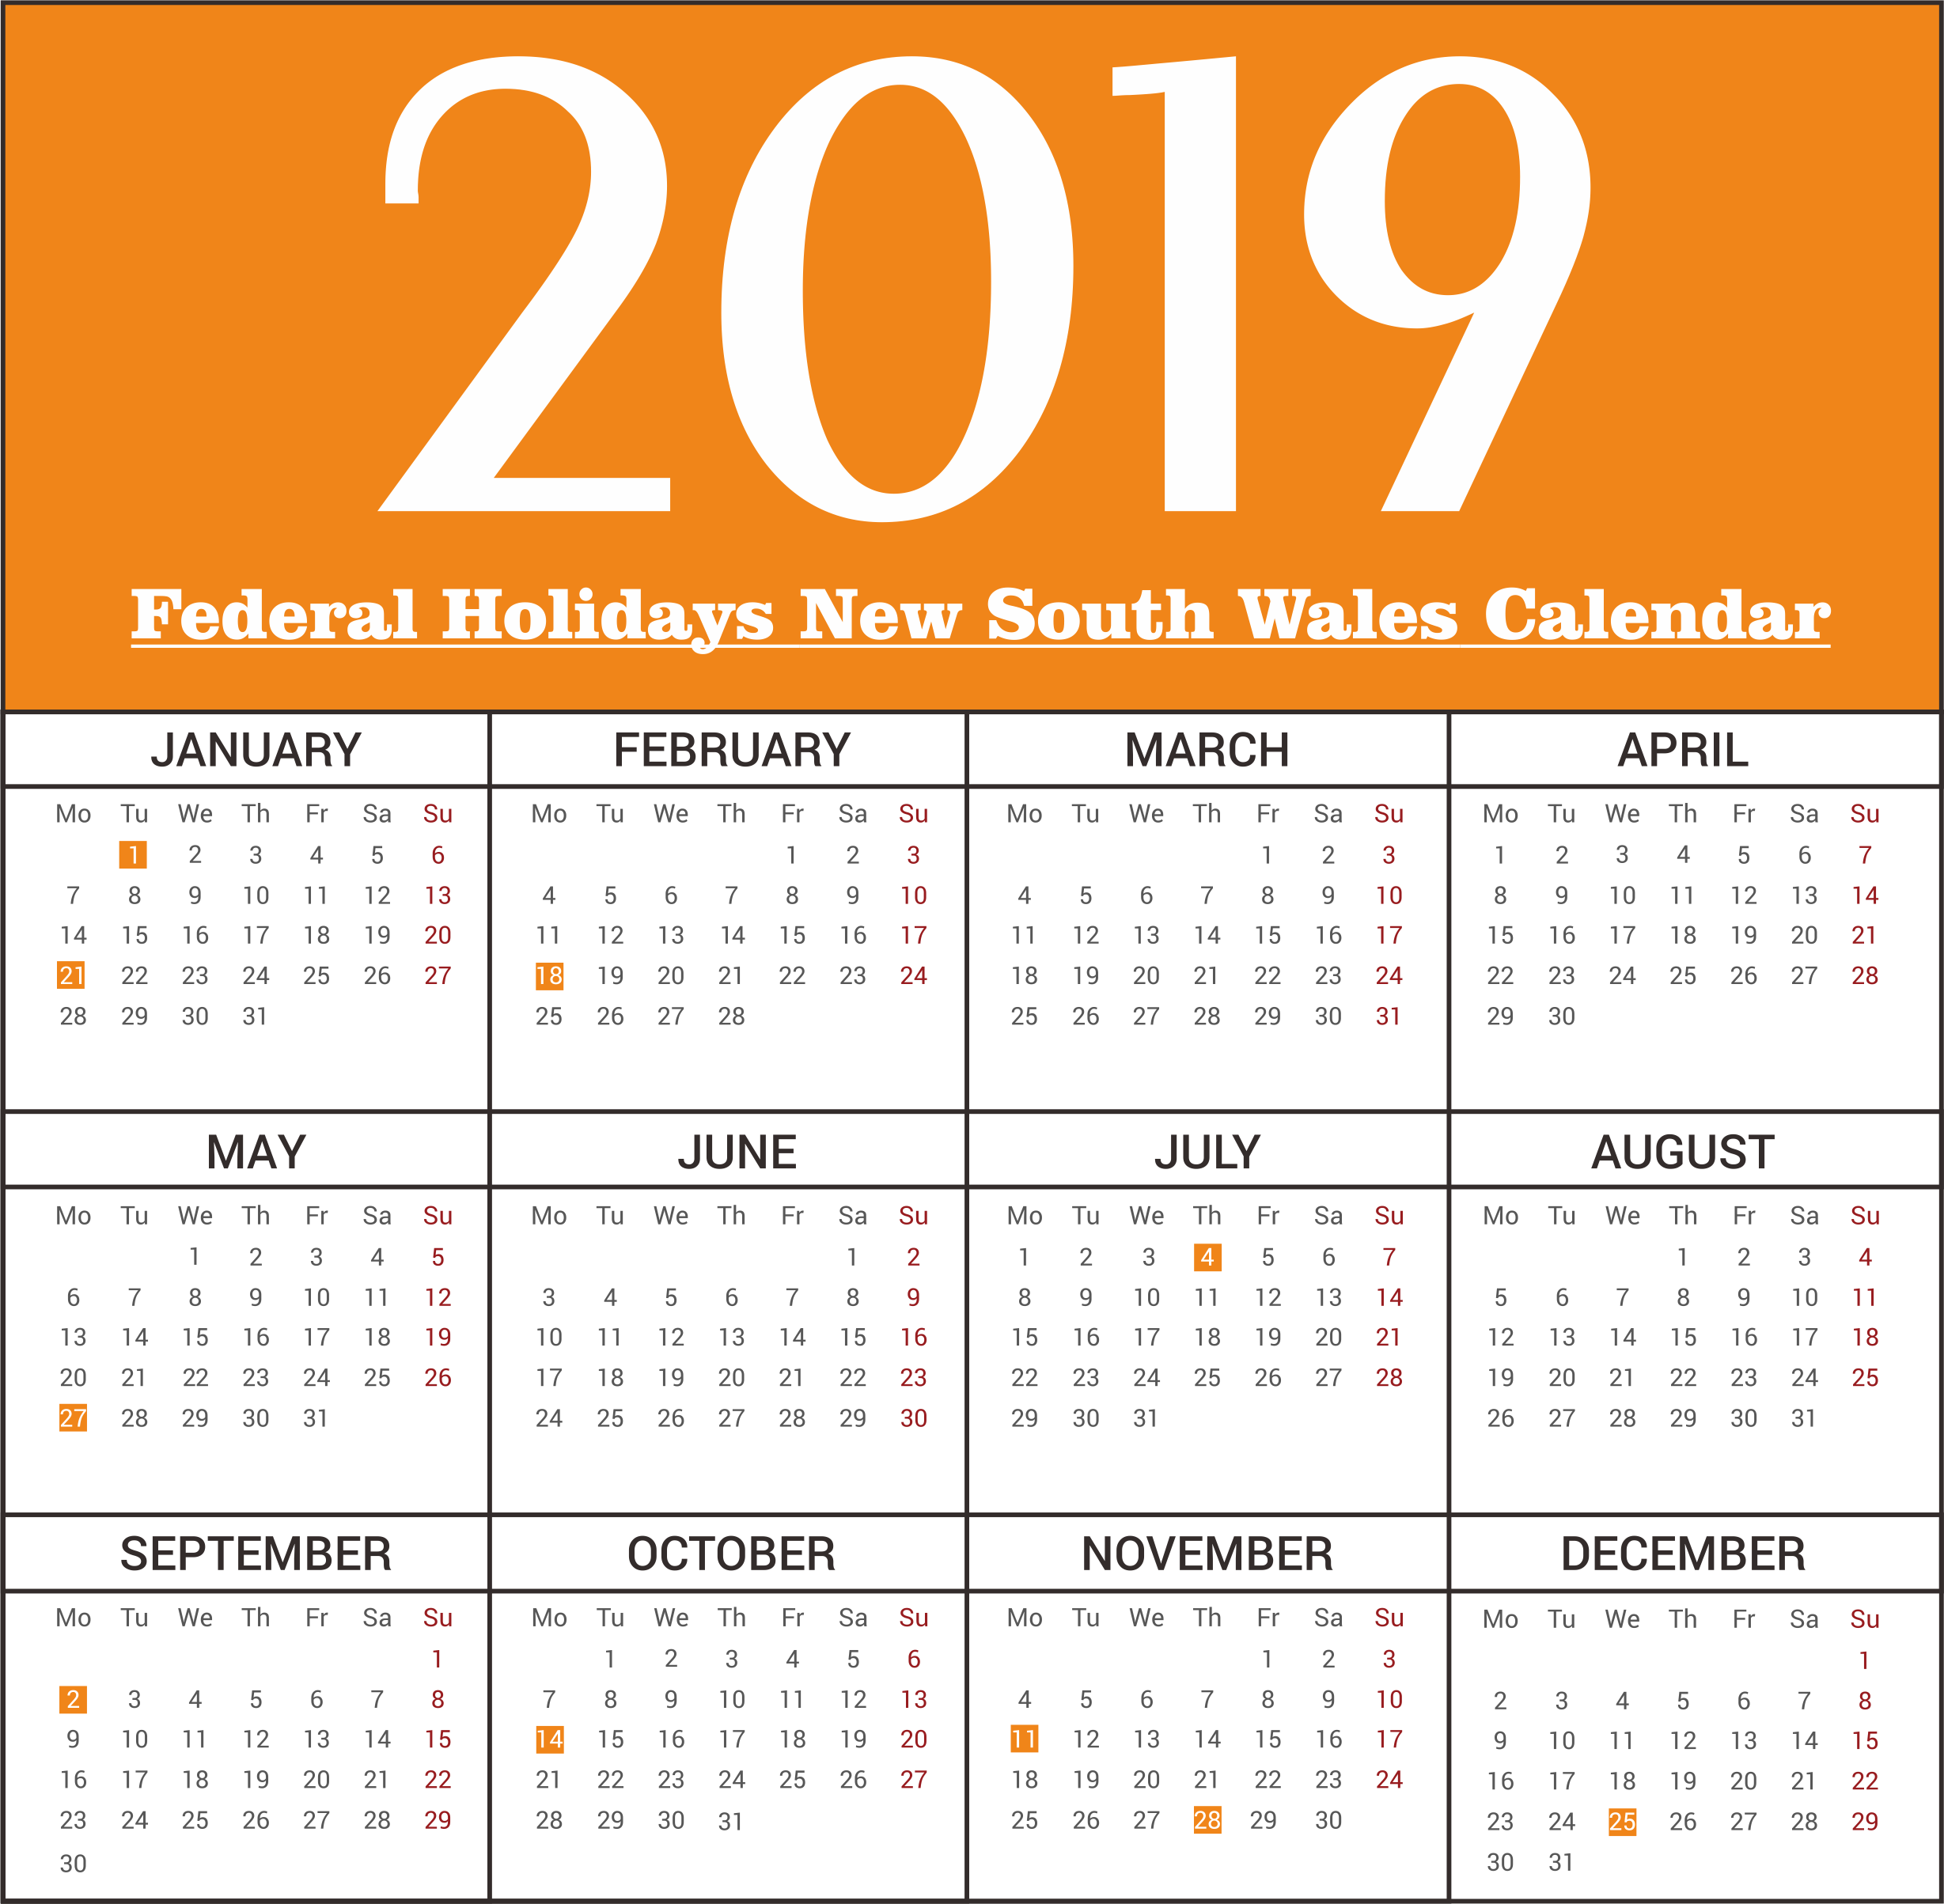 NSW Federal Holiday Print 2019